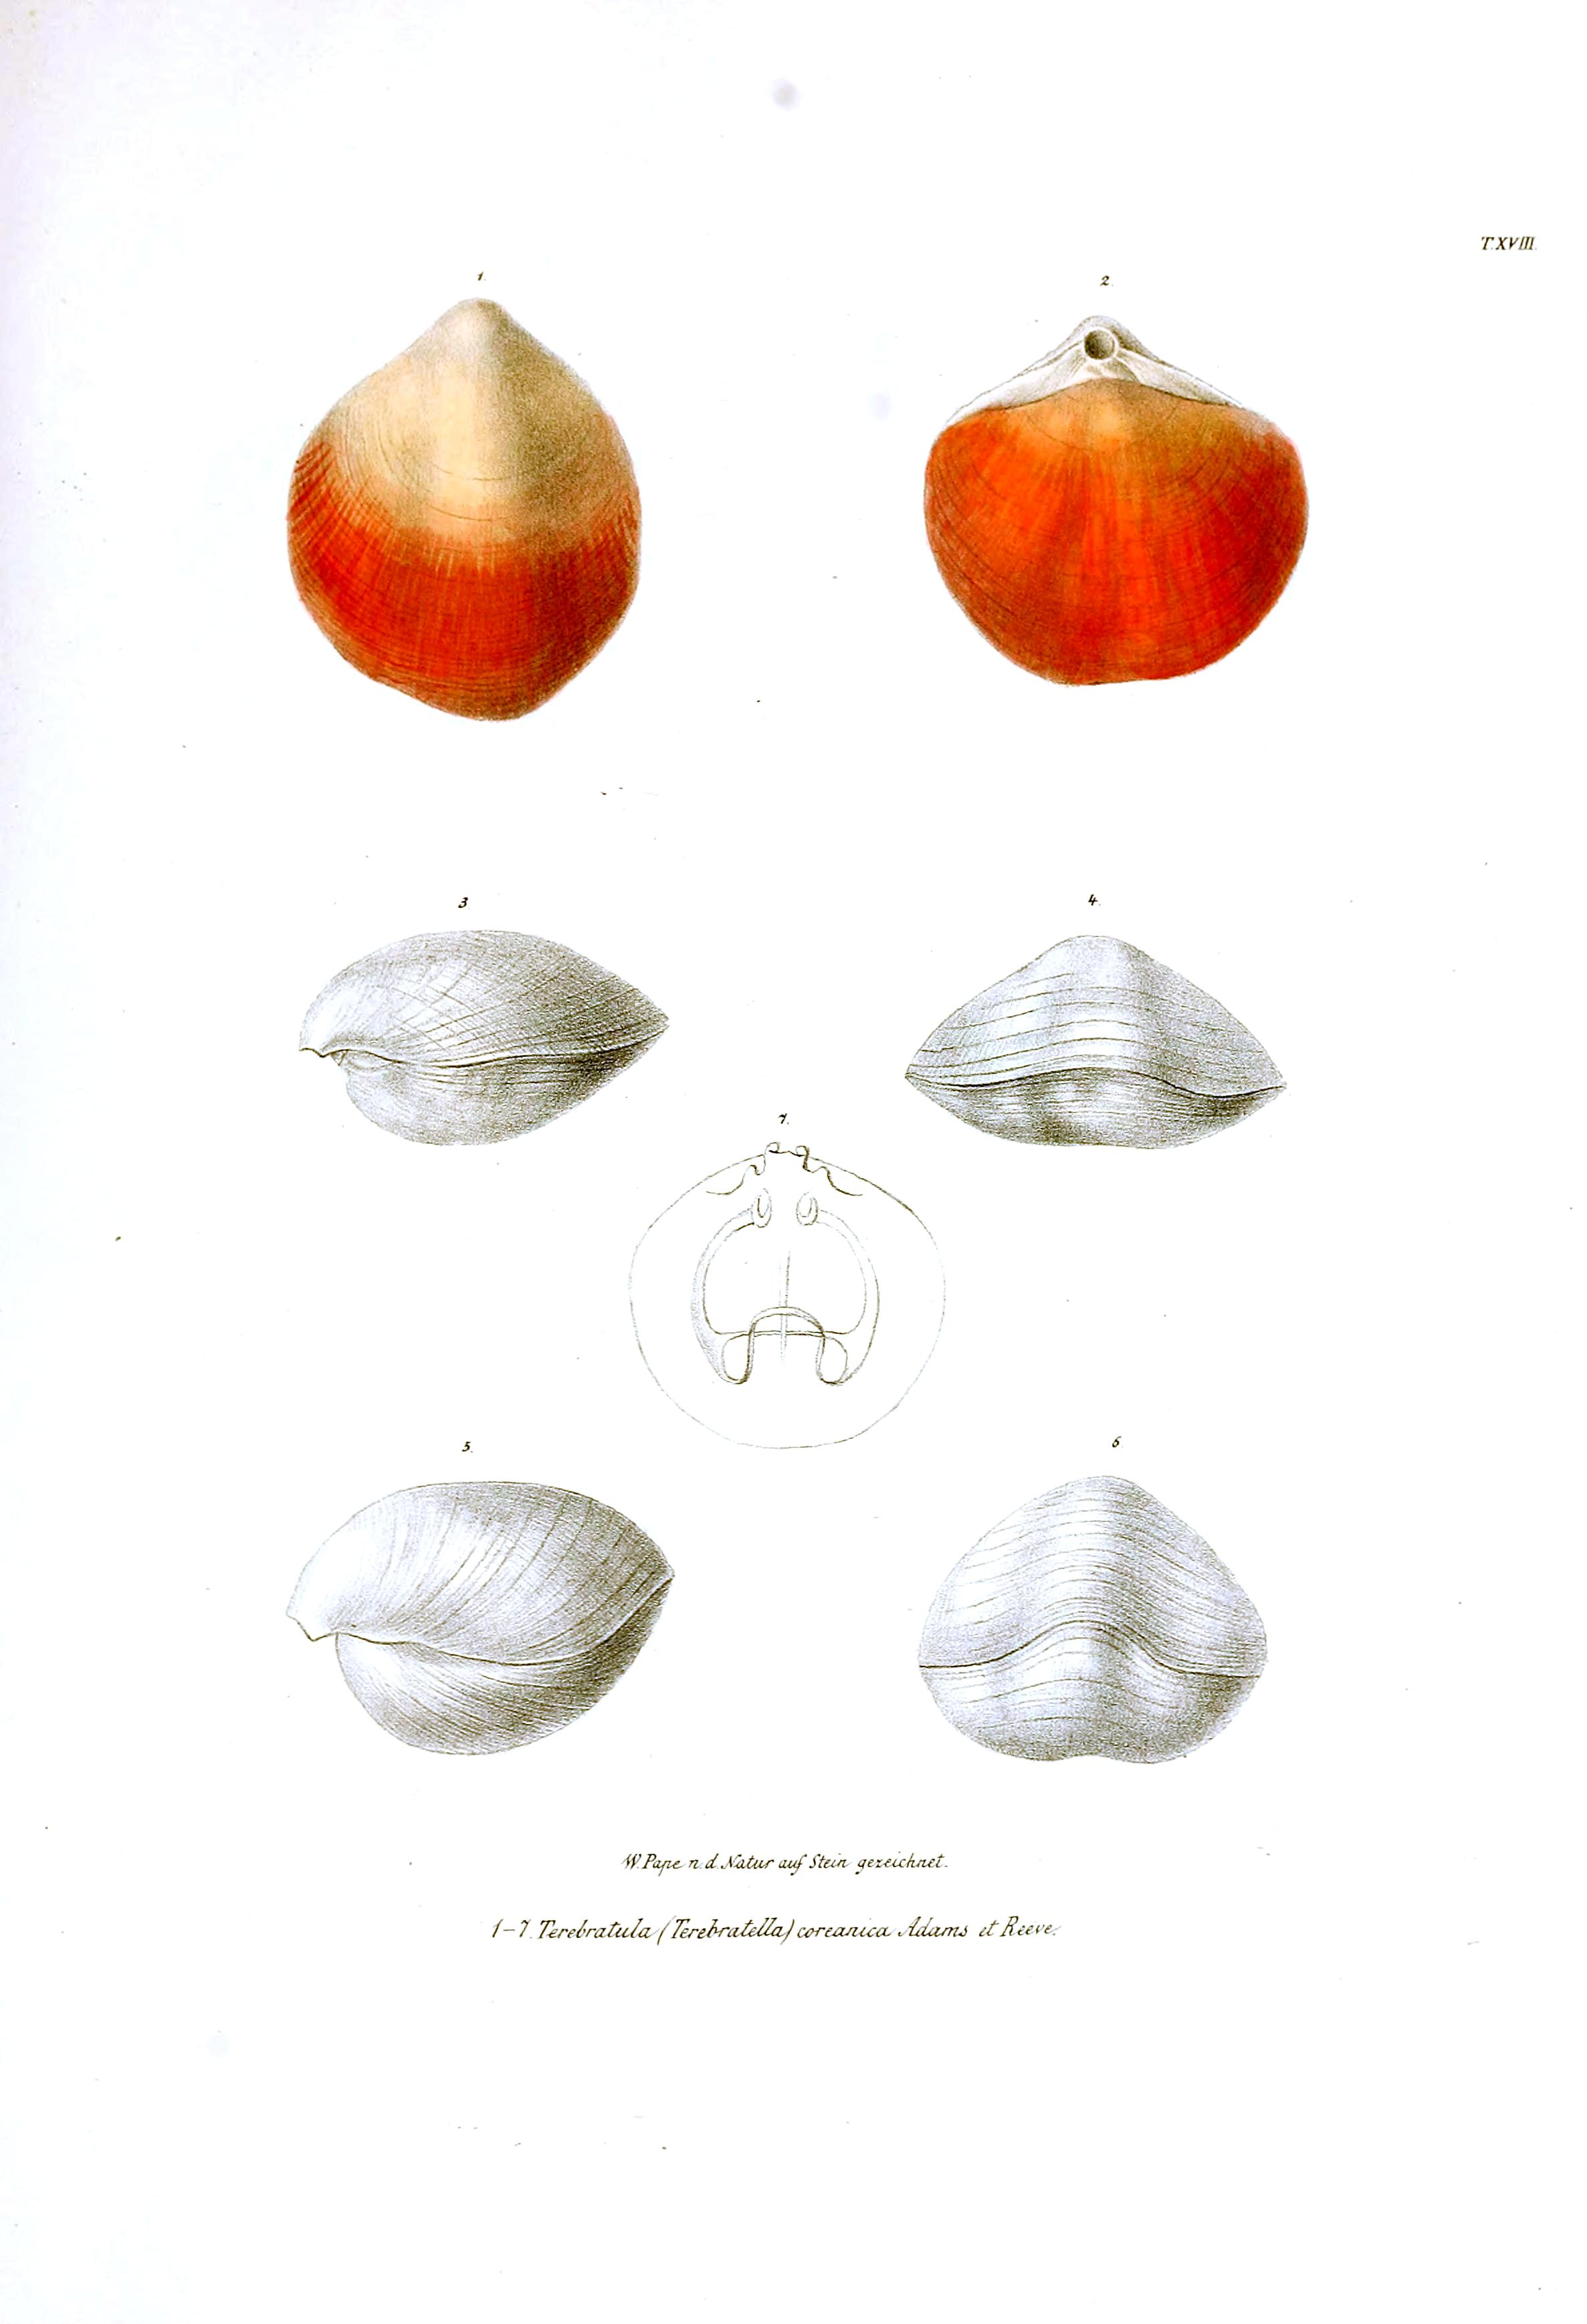 Animal - Sea Shell - Bivalve, orange